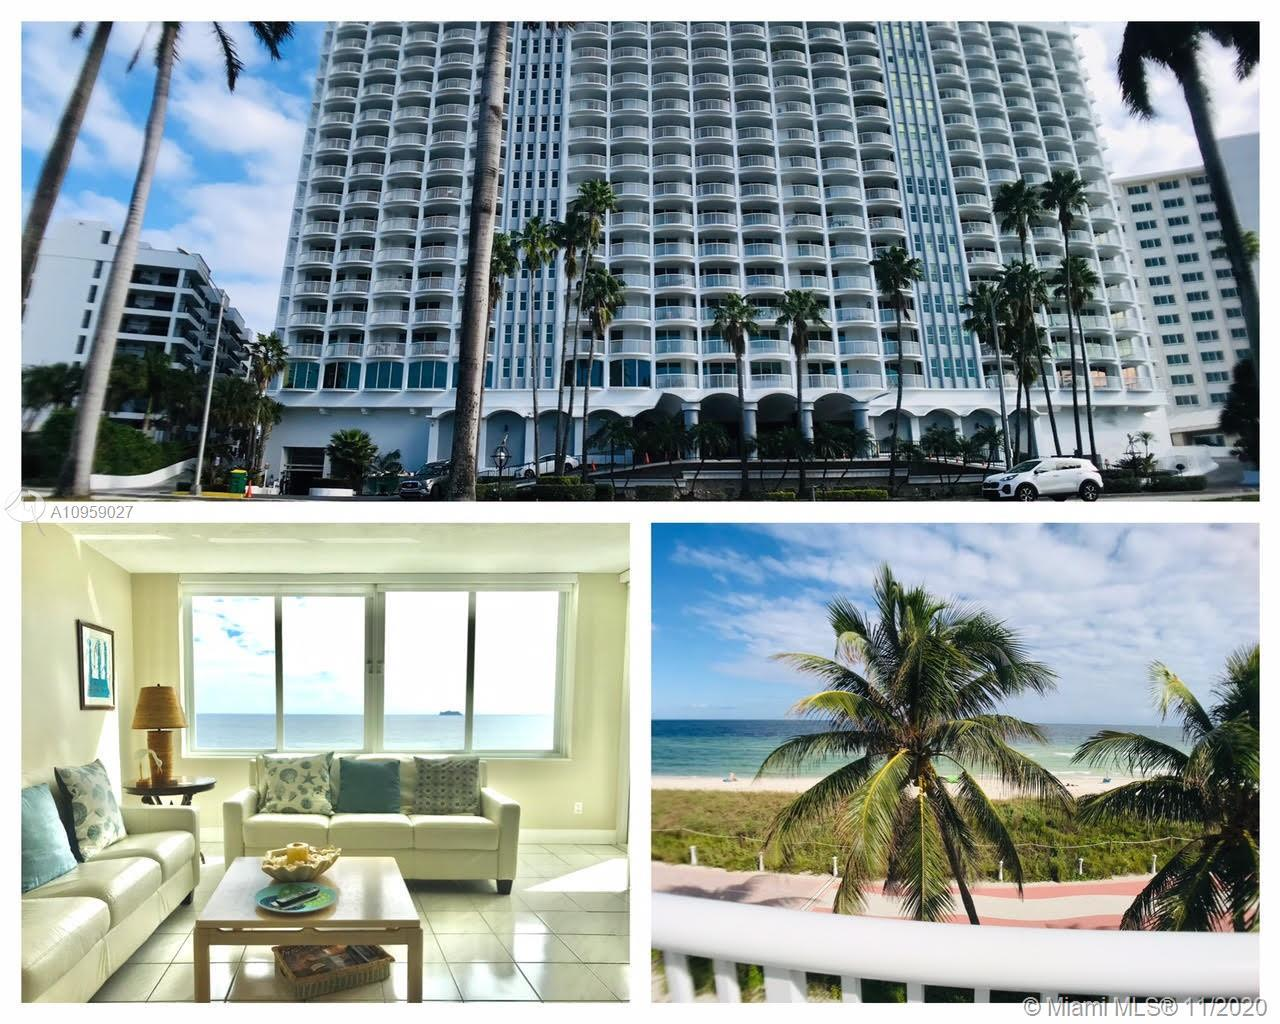 Great opportunity to invest, live or have a vacation property in a Millionaire's area. This large 98